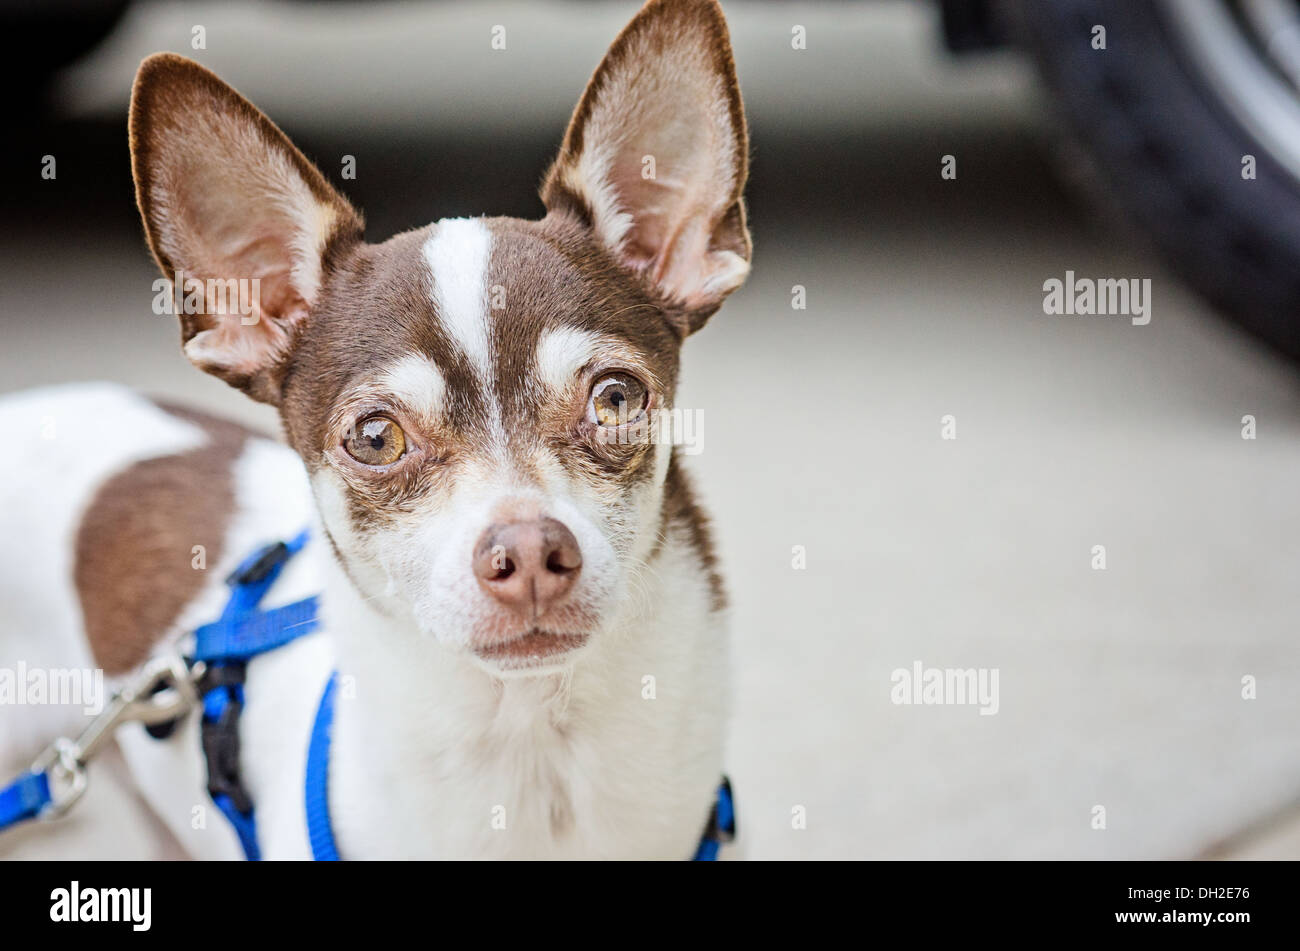 Pedro the Chihuahua is ready to rumble! Stock Photo